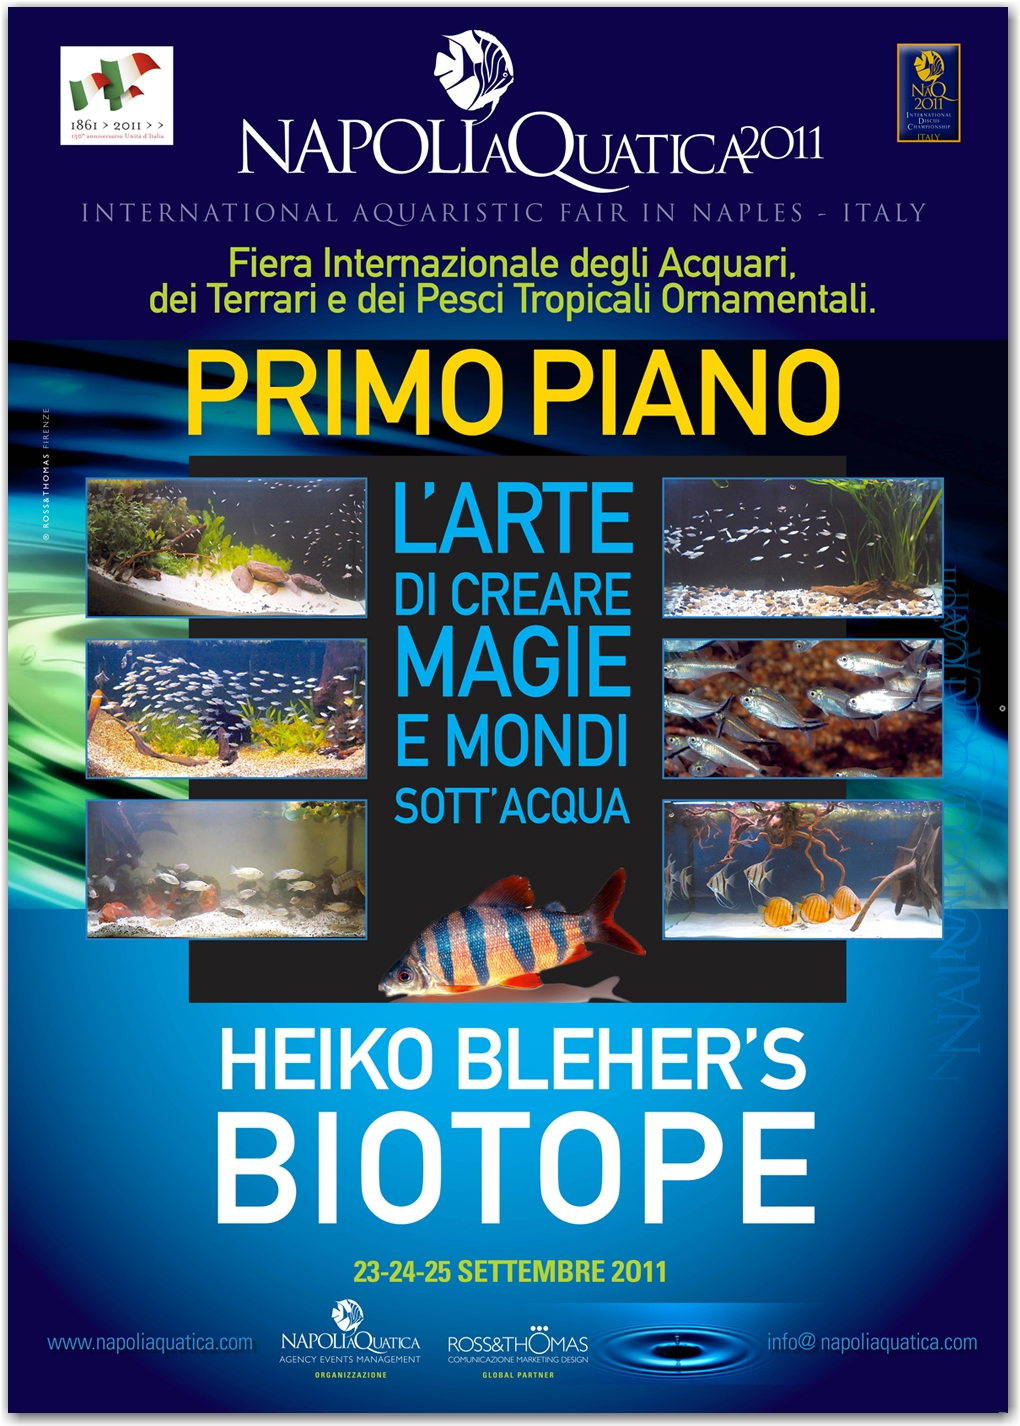 bleher biotope